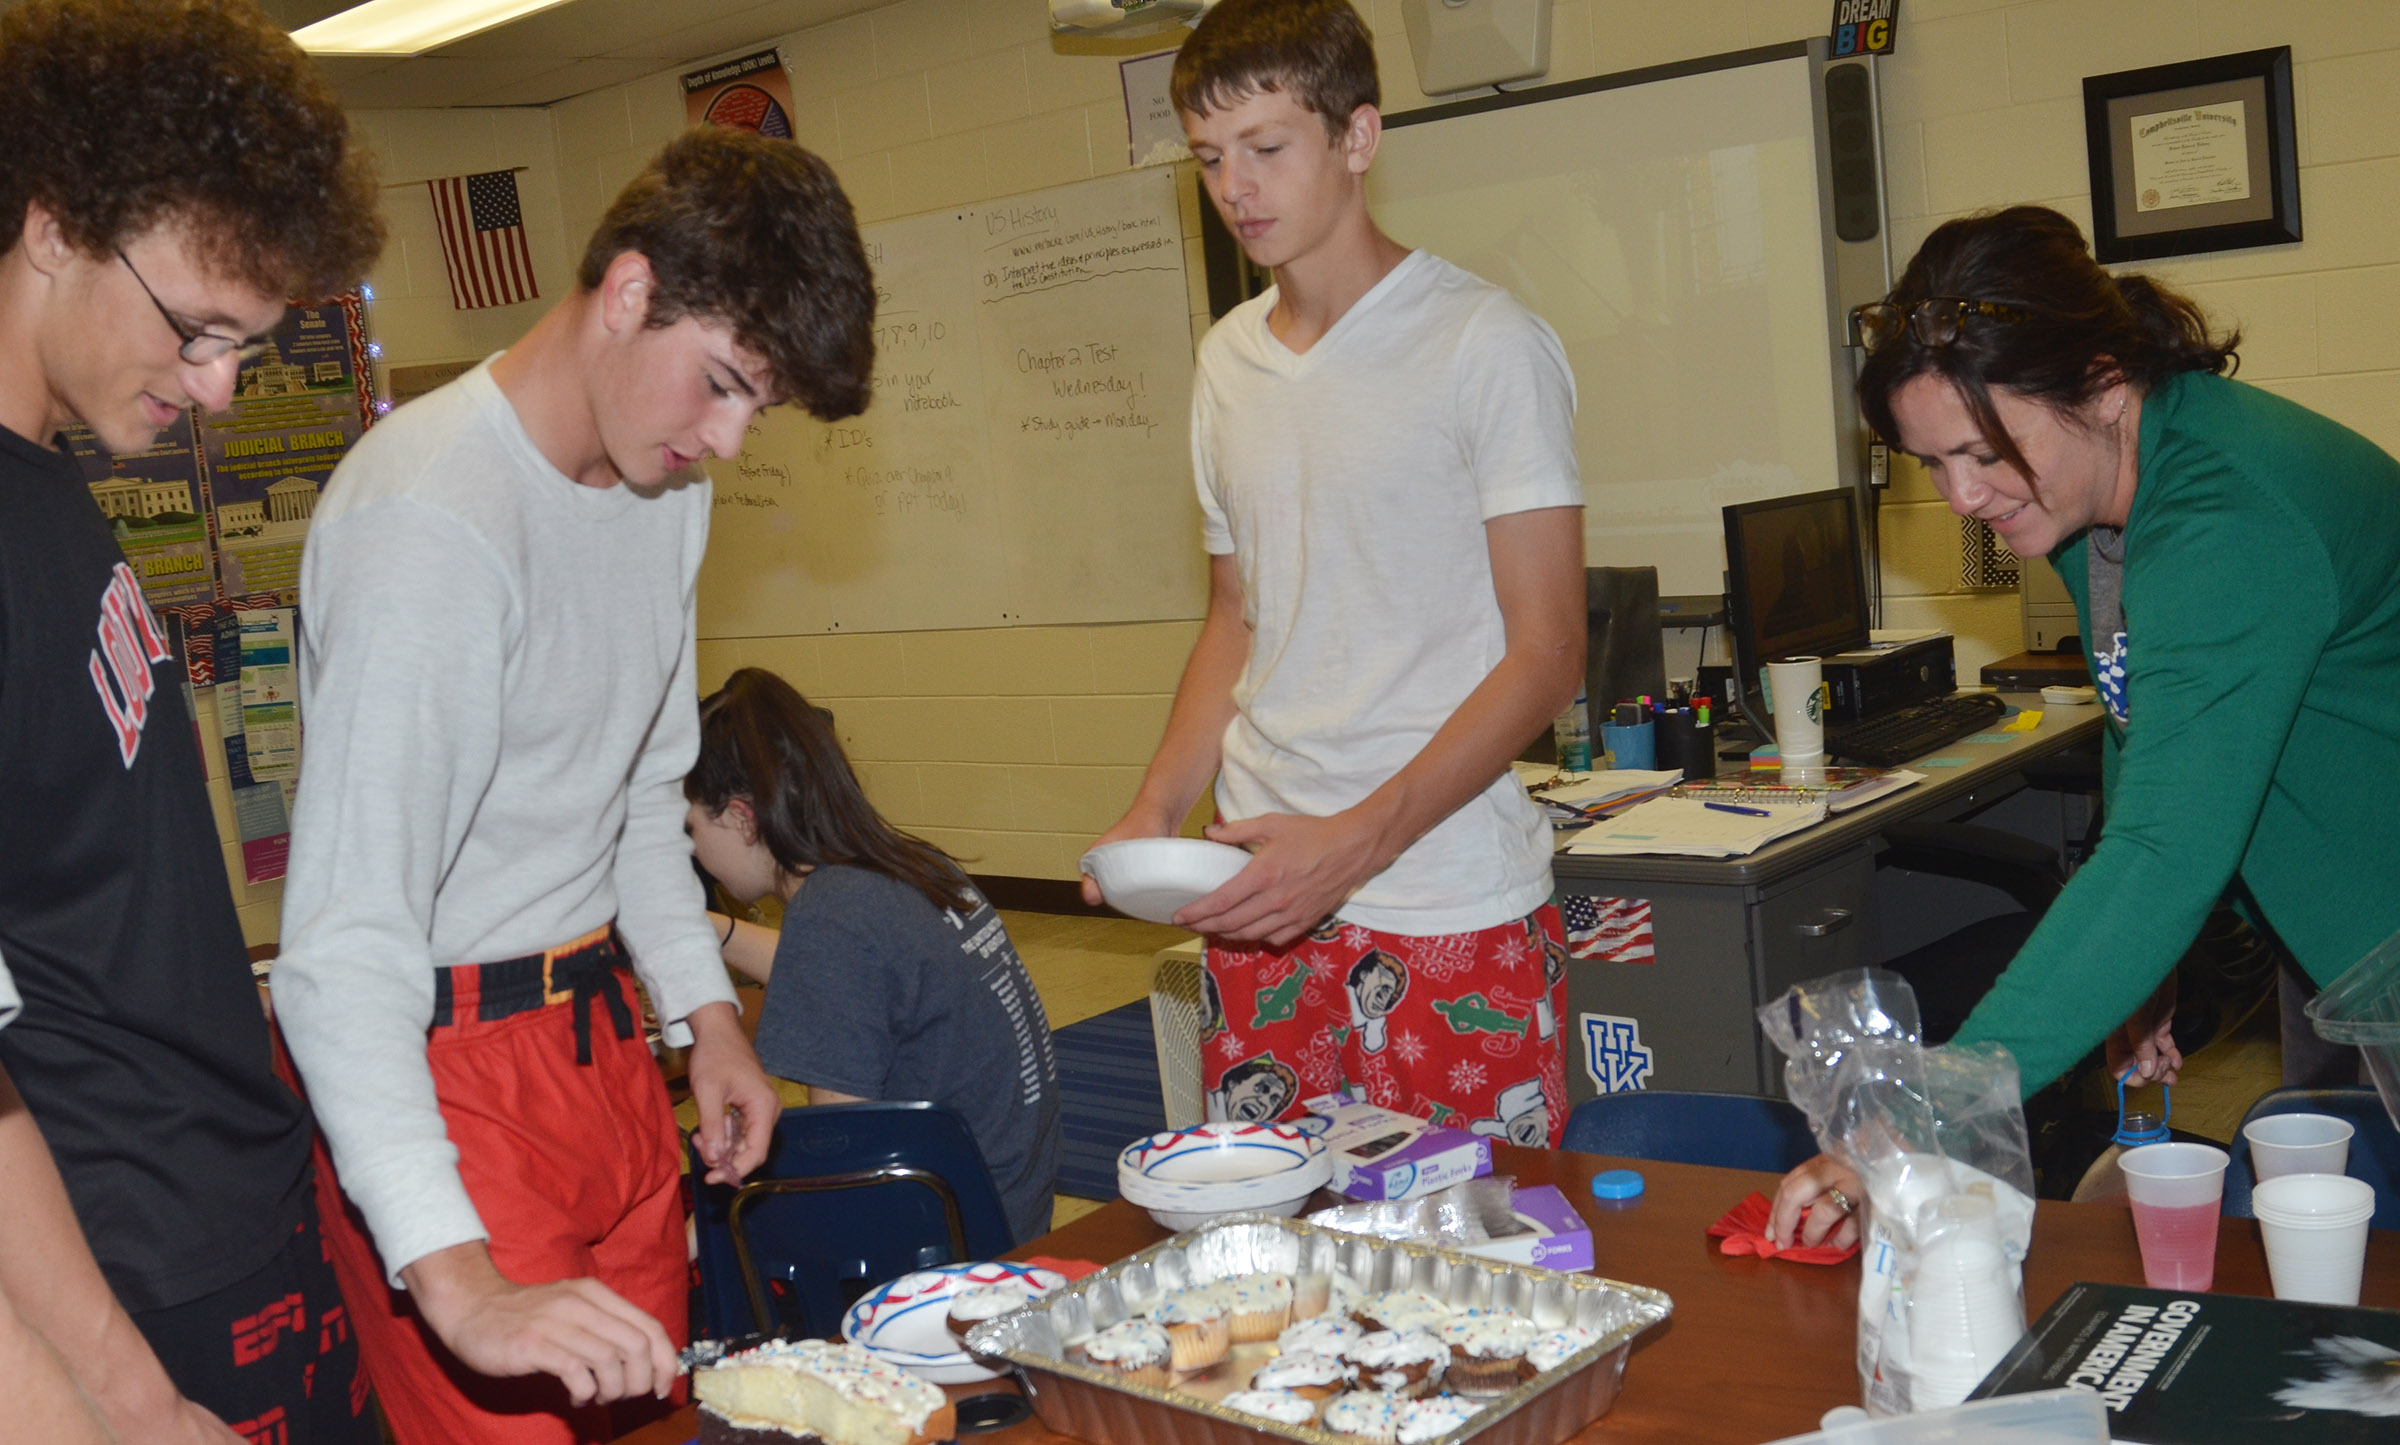 CES teacher Susan Dabney serves her students, from left, sophomores Brennon Wheeler, Mark Rigsby and Noah Hughes marble cake cupcakes and layer cake during their Constitution Day party.